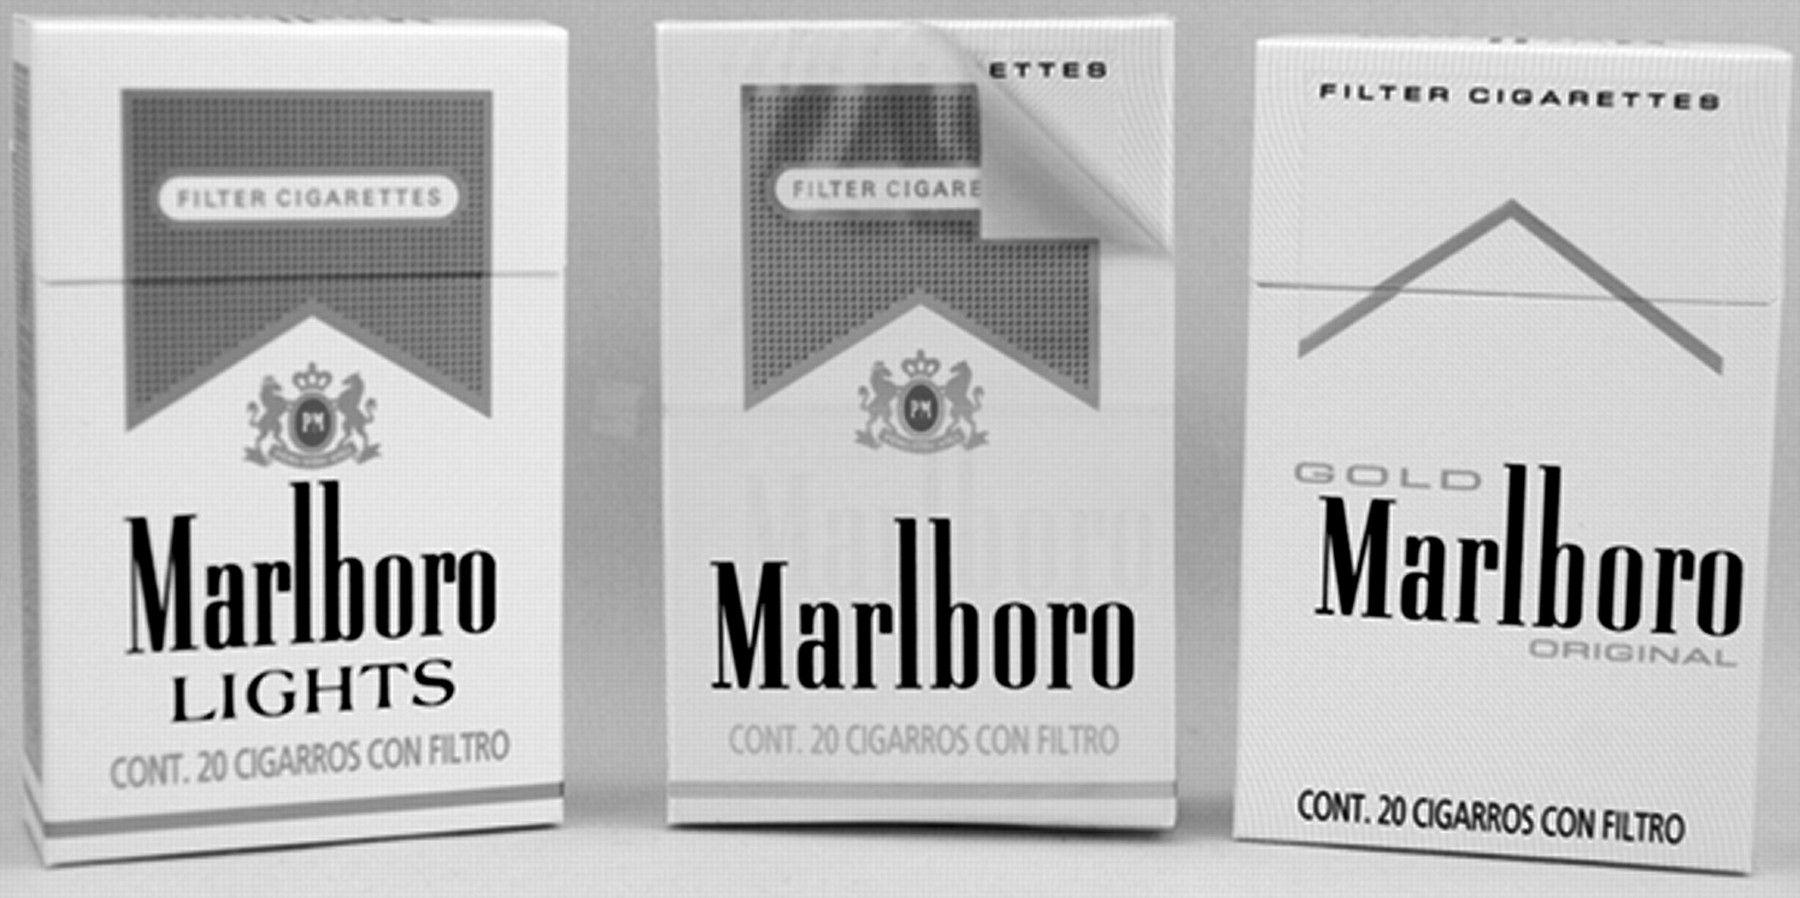 Blue cigarettes Marlboro Chicago